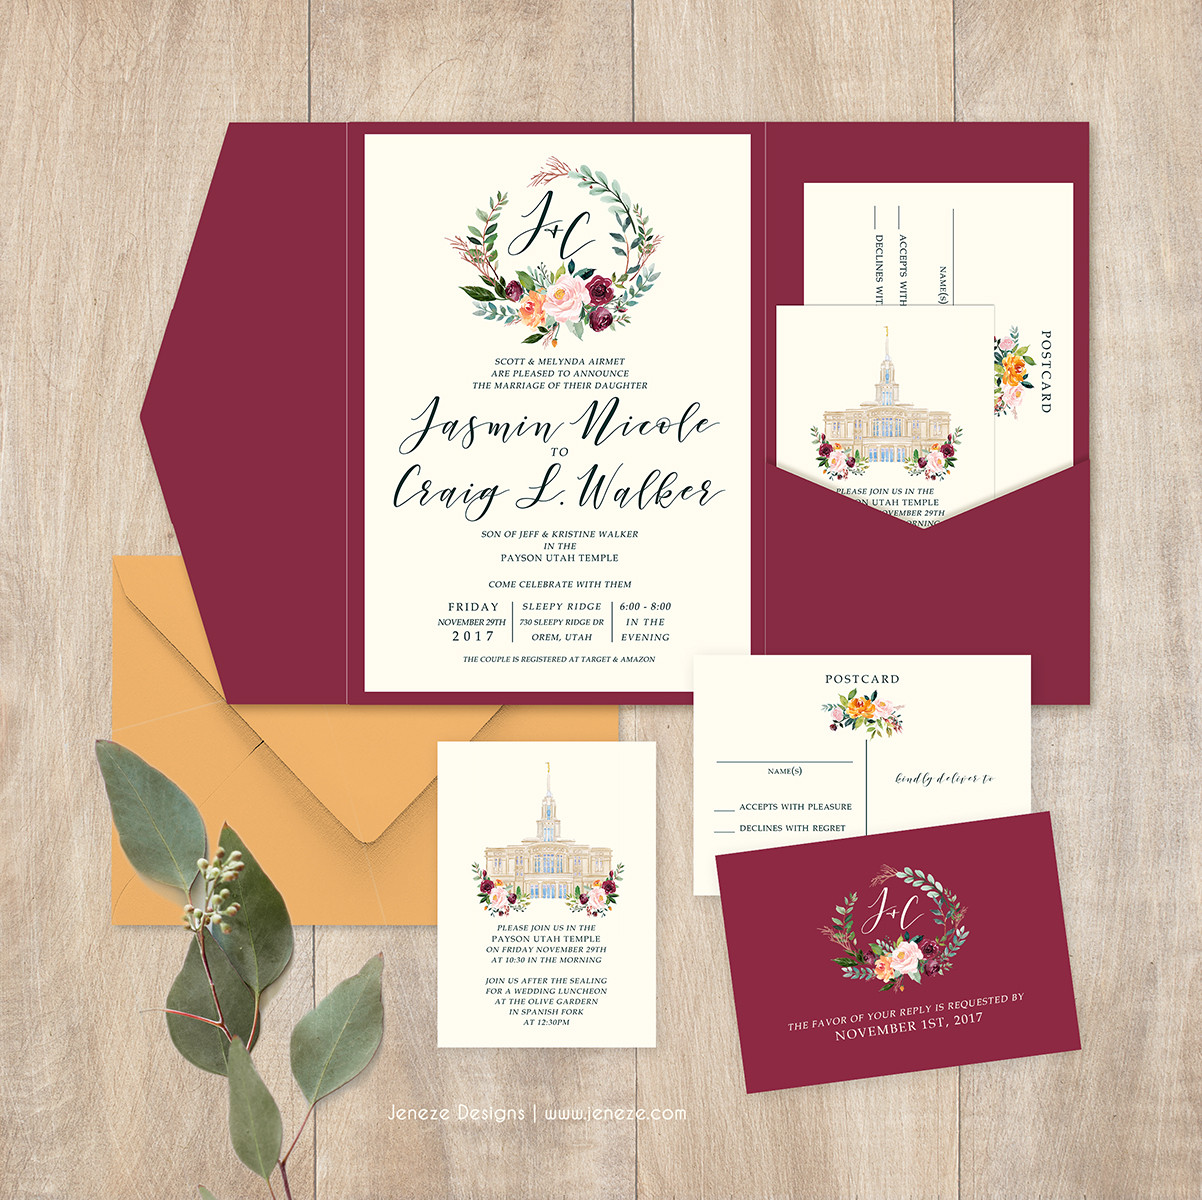 Jeneze Designs Custom Wedding Invitations | POCKET INVITATIONS